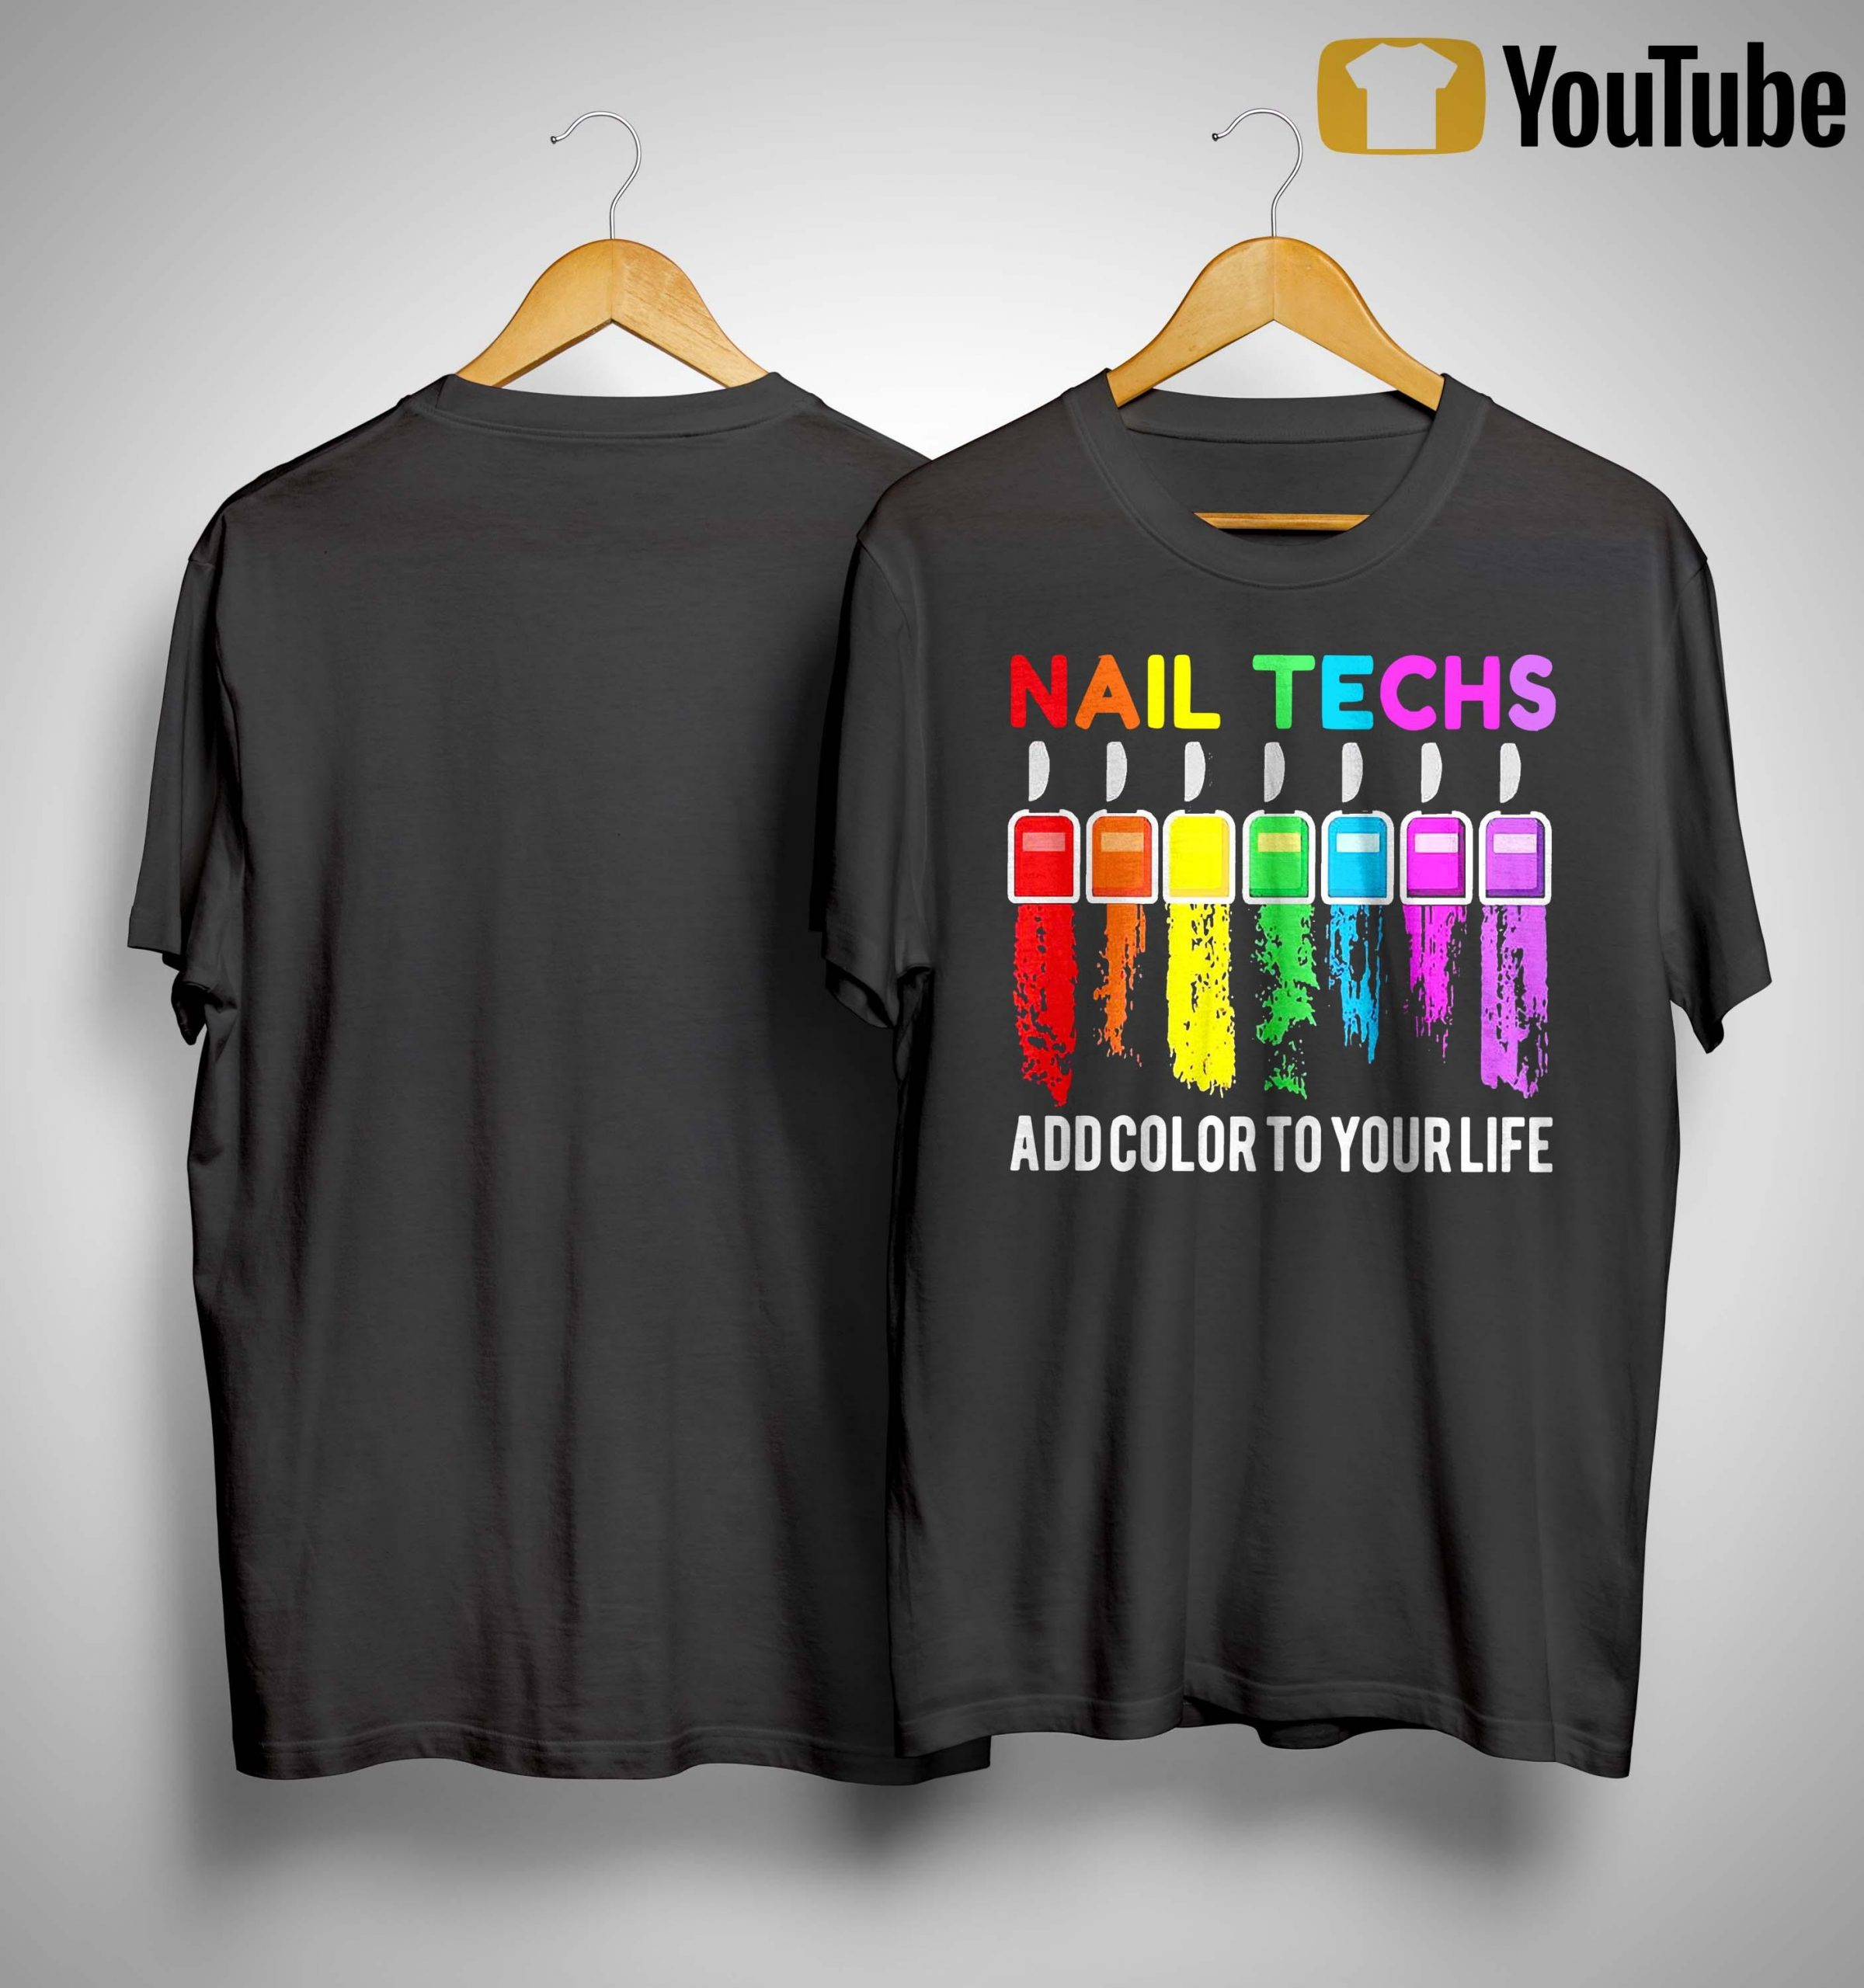 Nail Techs Add Color To Your Life Shirt